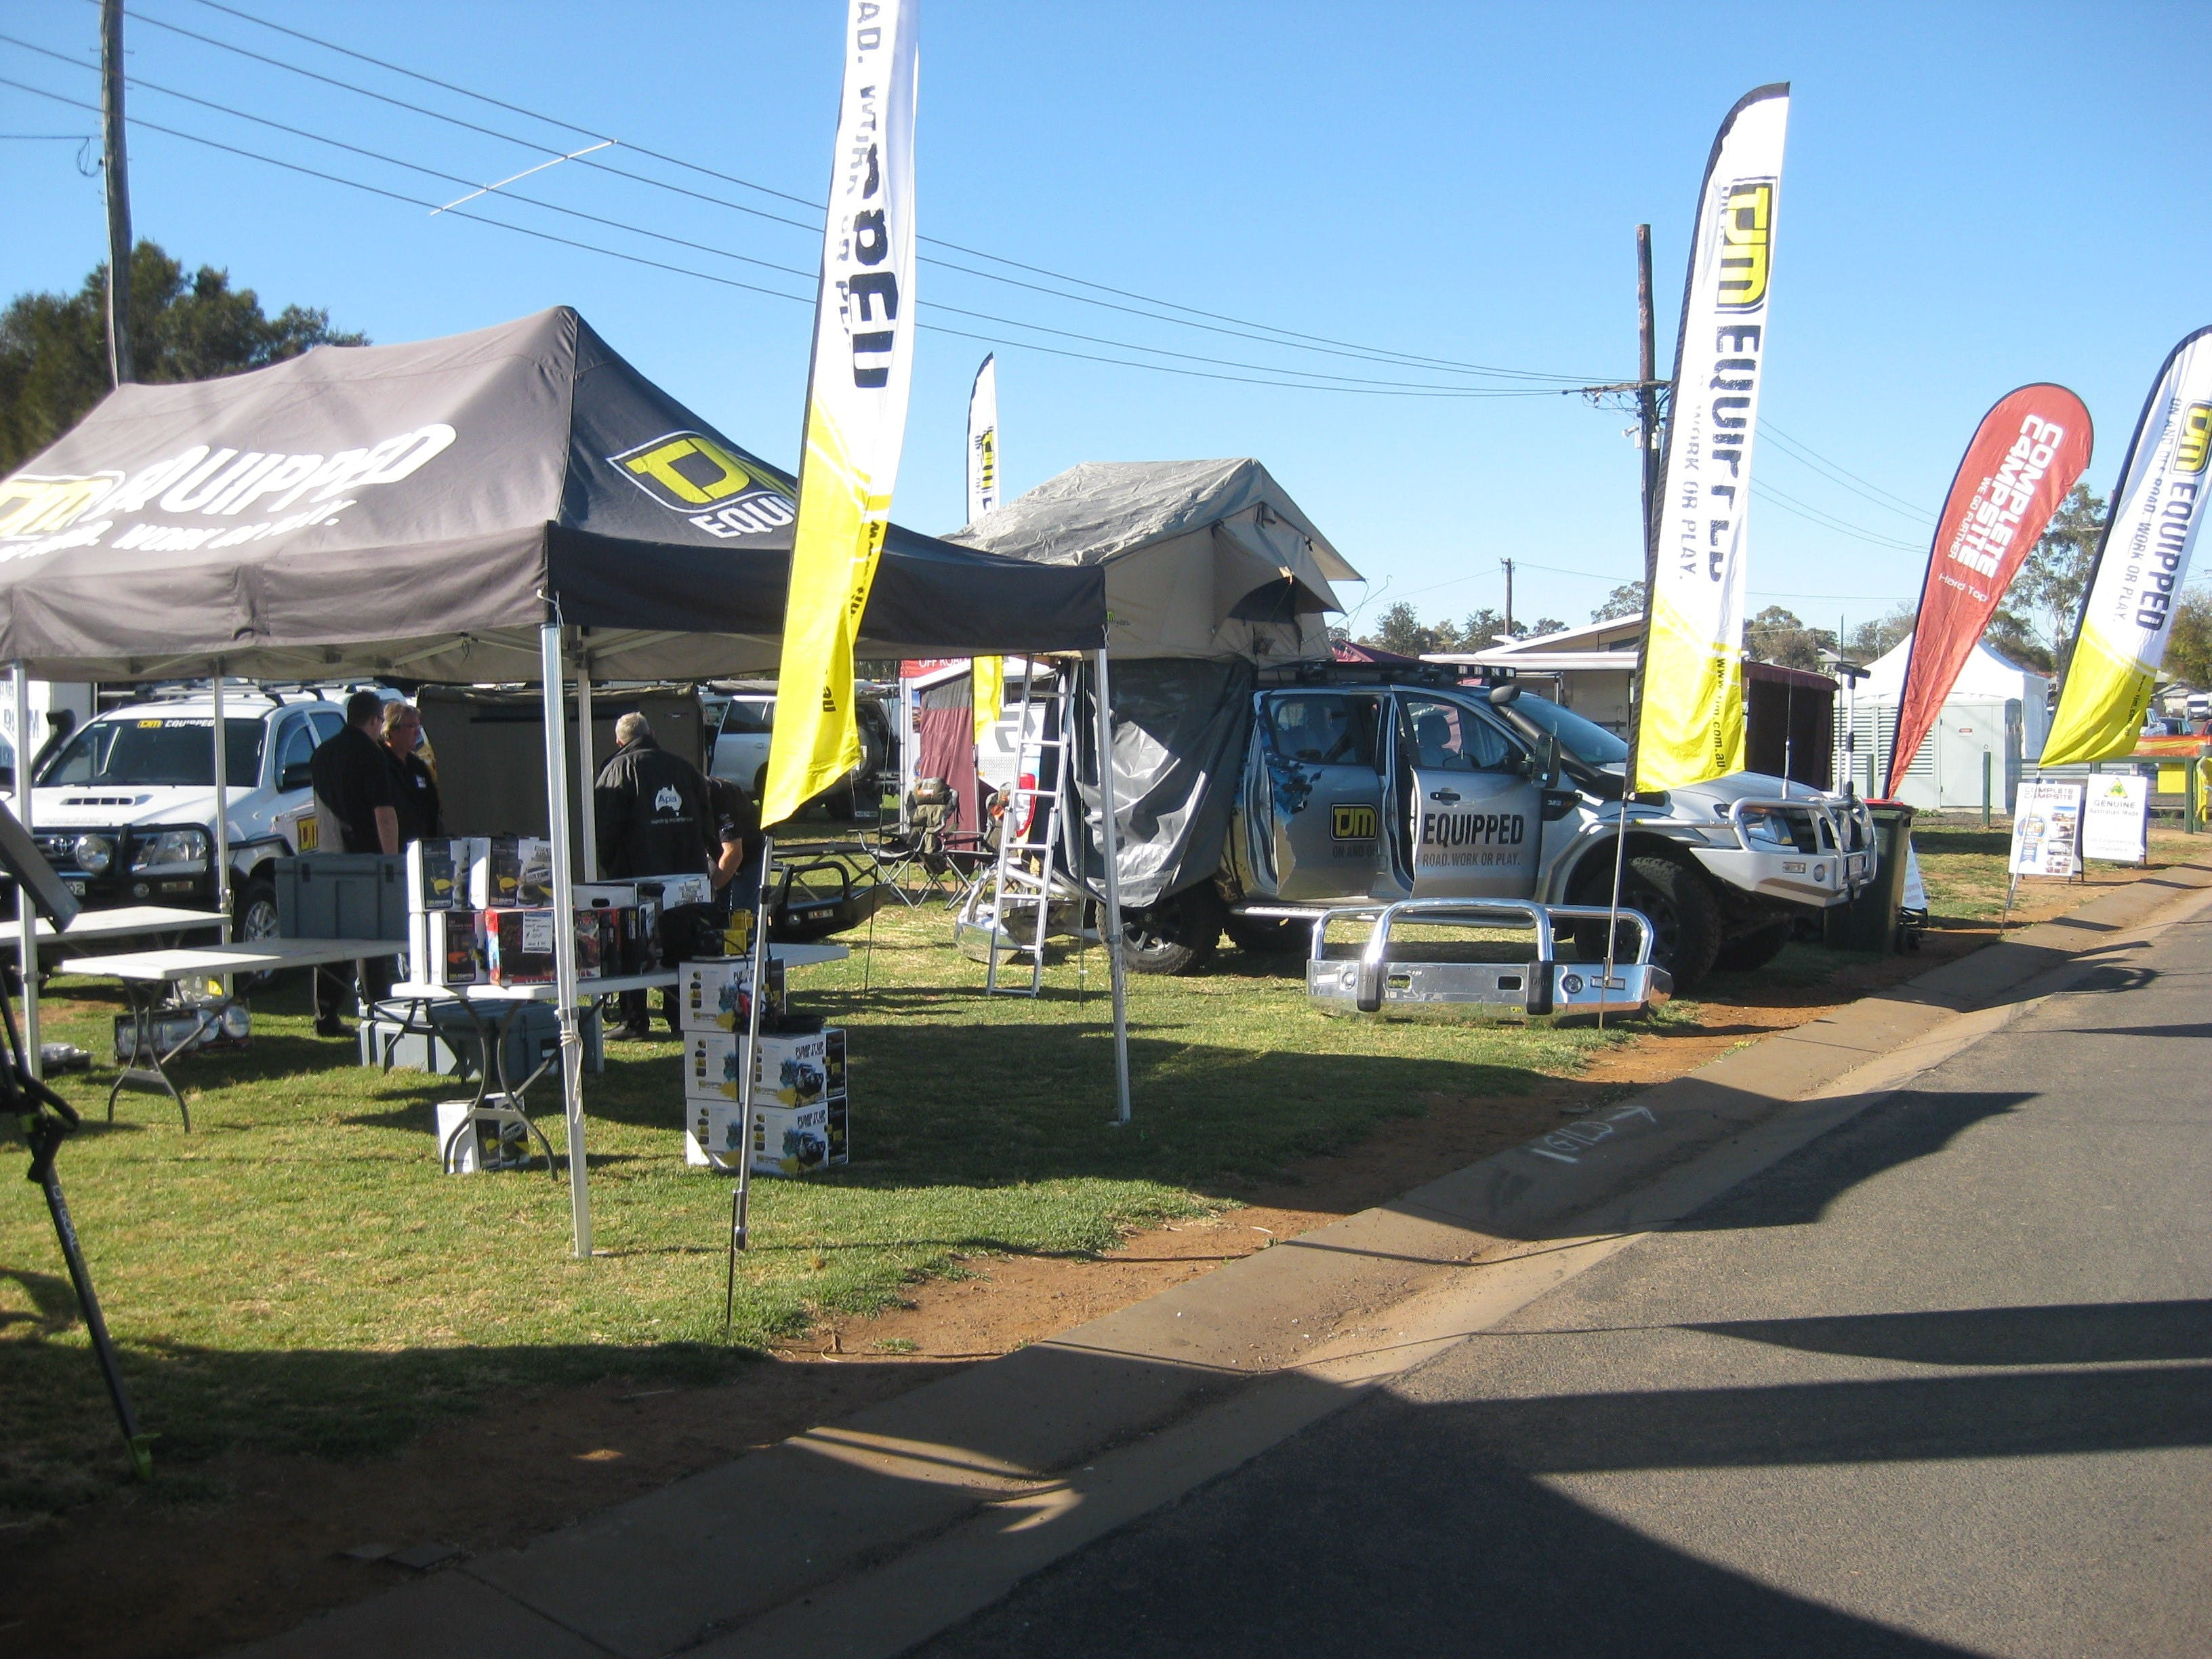 Orana Caravan Camping 4WD Fish and Boat Show - Accommodation Brisbane